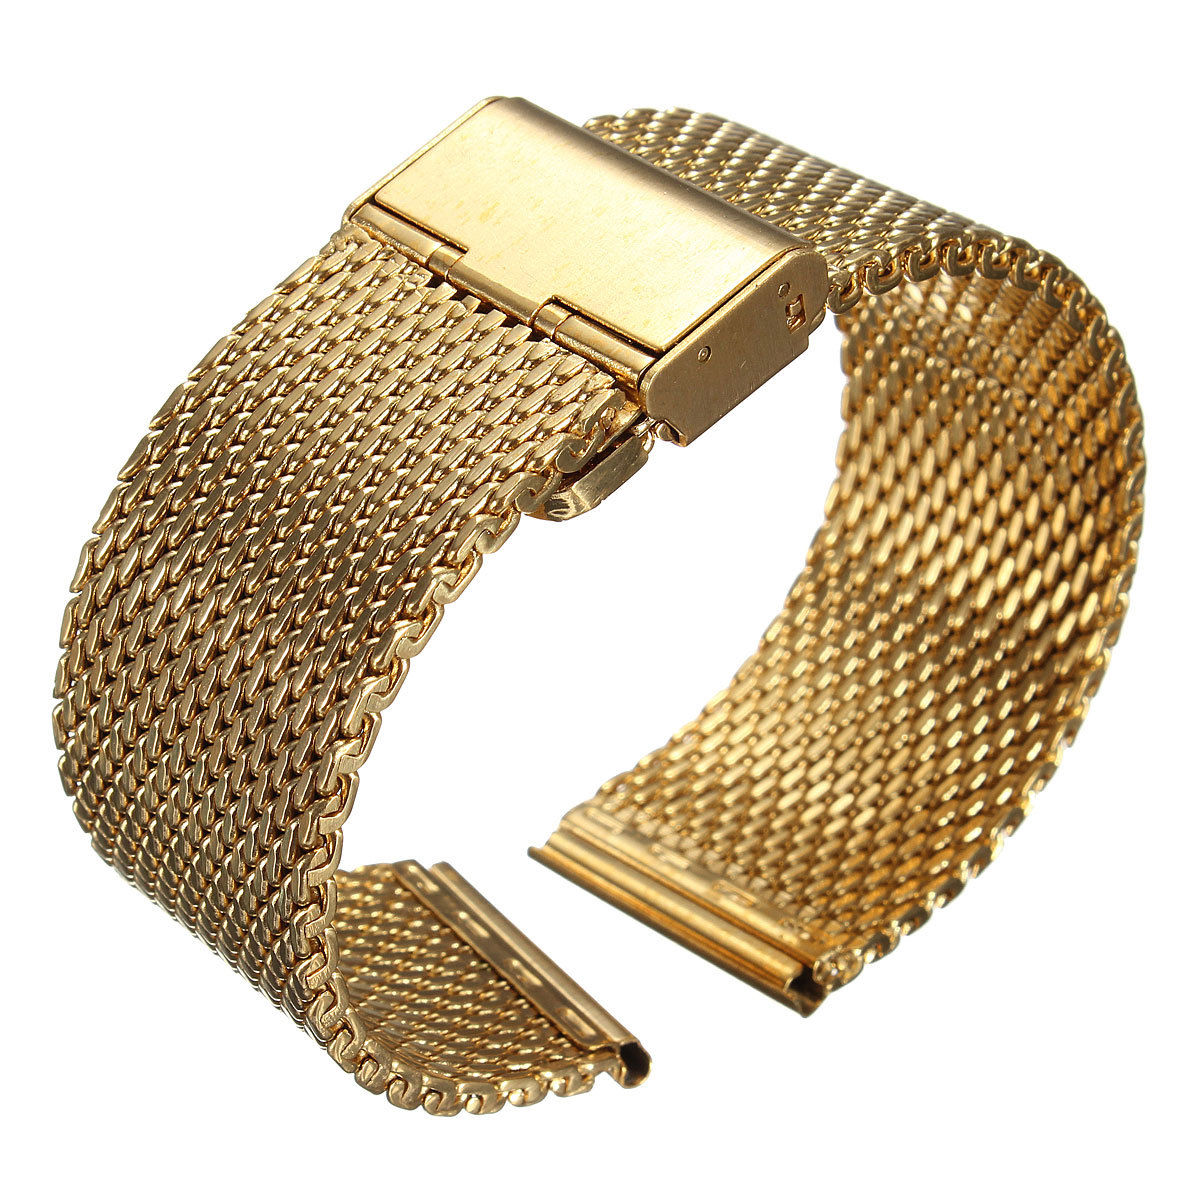 YCYS!New 18mm Watch Strap Shark Mesh Band Stainless Double Clasp Steel Bracelet Gold watch band 22mm new gold brushed stainless steel bracelet watchbands strap bracelets double flip lock clasp free shipping